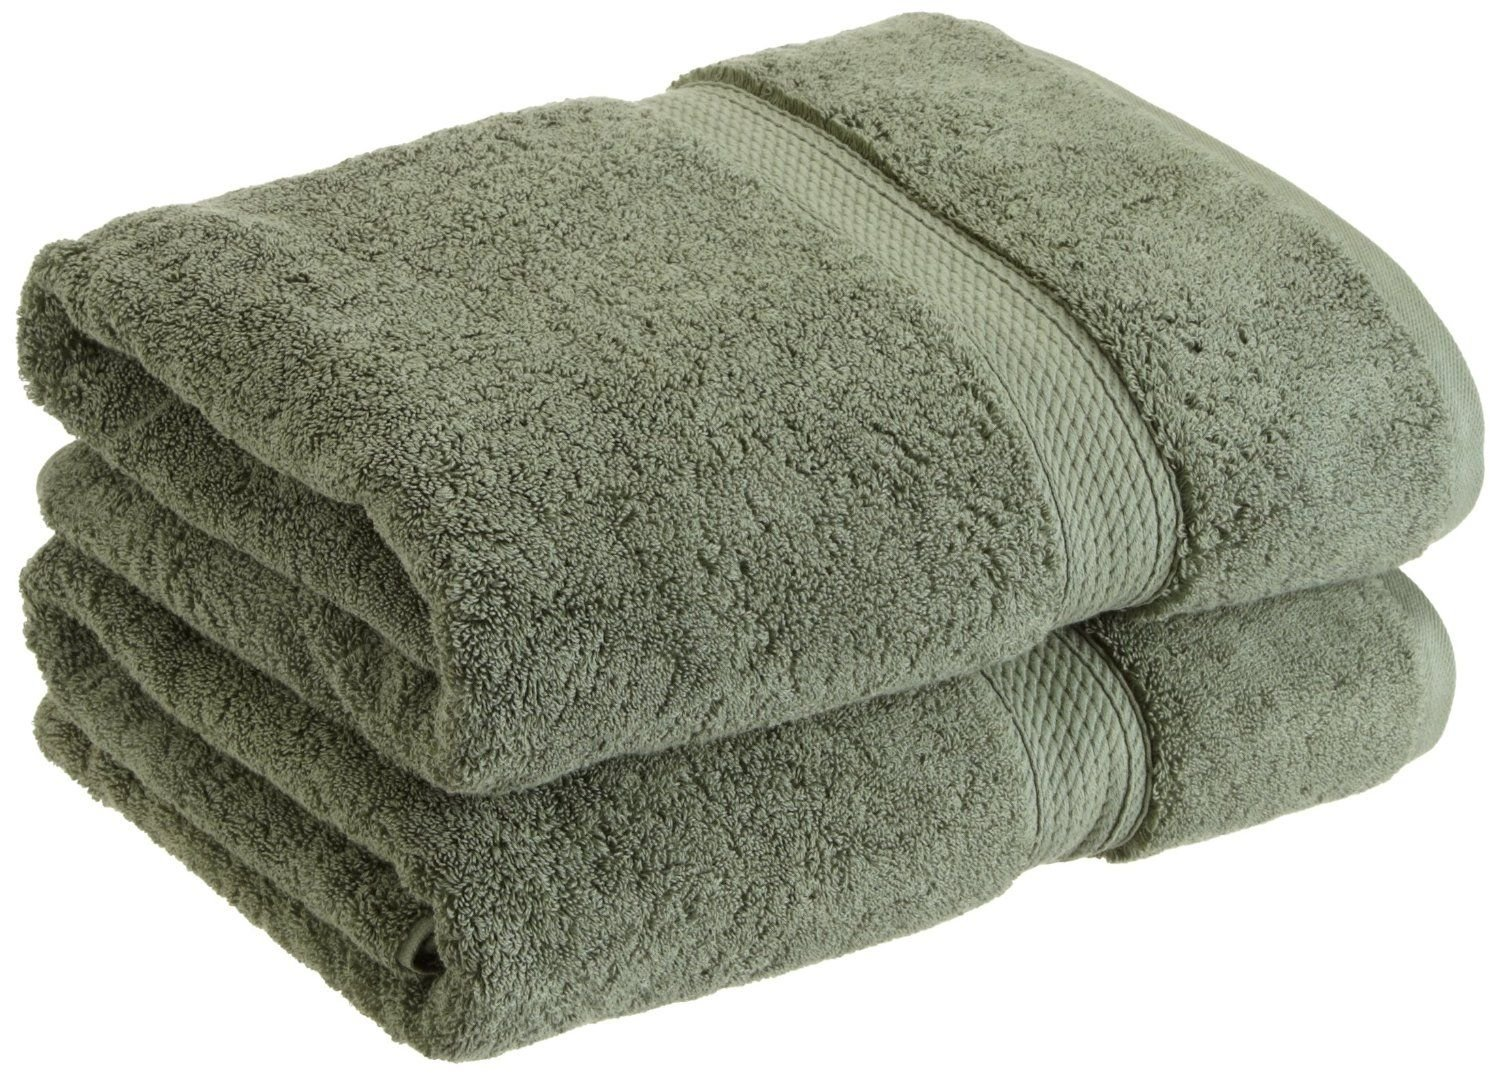 Superior 900 GSM Luxury Bathroom Towels, Made of 100% Premium Long-Staple Combed Cotton, Set of 2 Hotel & Spa Quality Bath Towels - Forest Green, 30'' x 55'' each